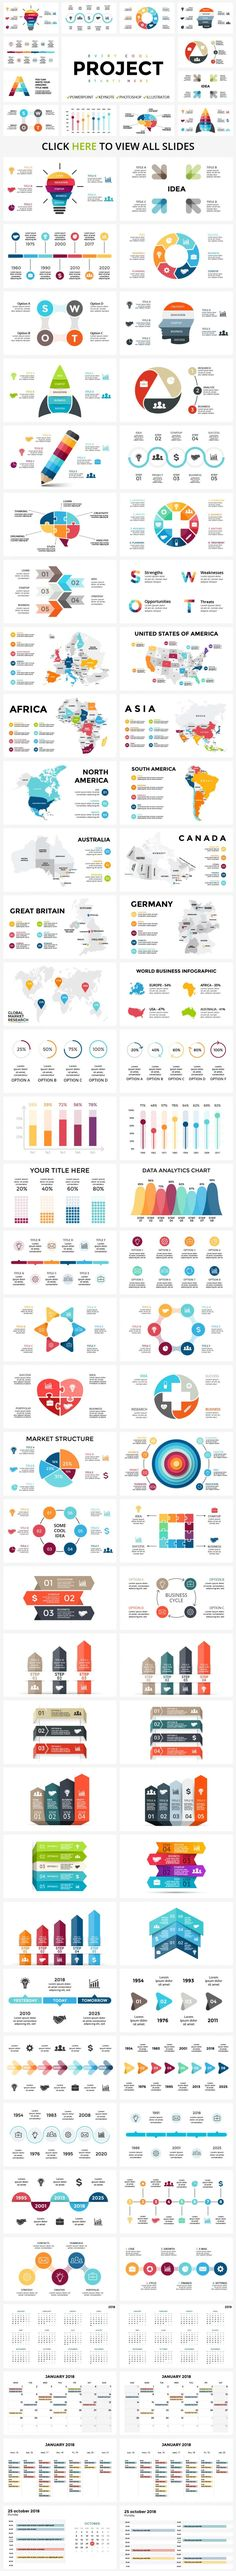 Bundle of 1400 Fully Customizable Infographic Templates - only $24! - MightyDeals